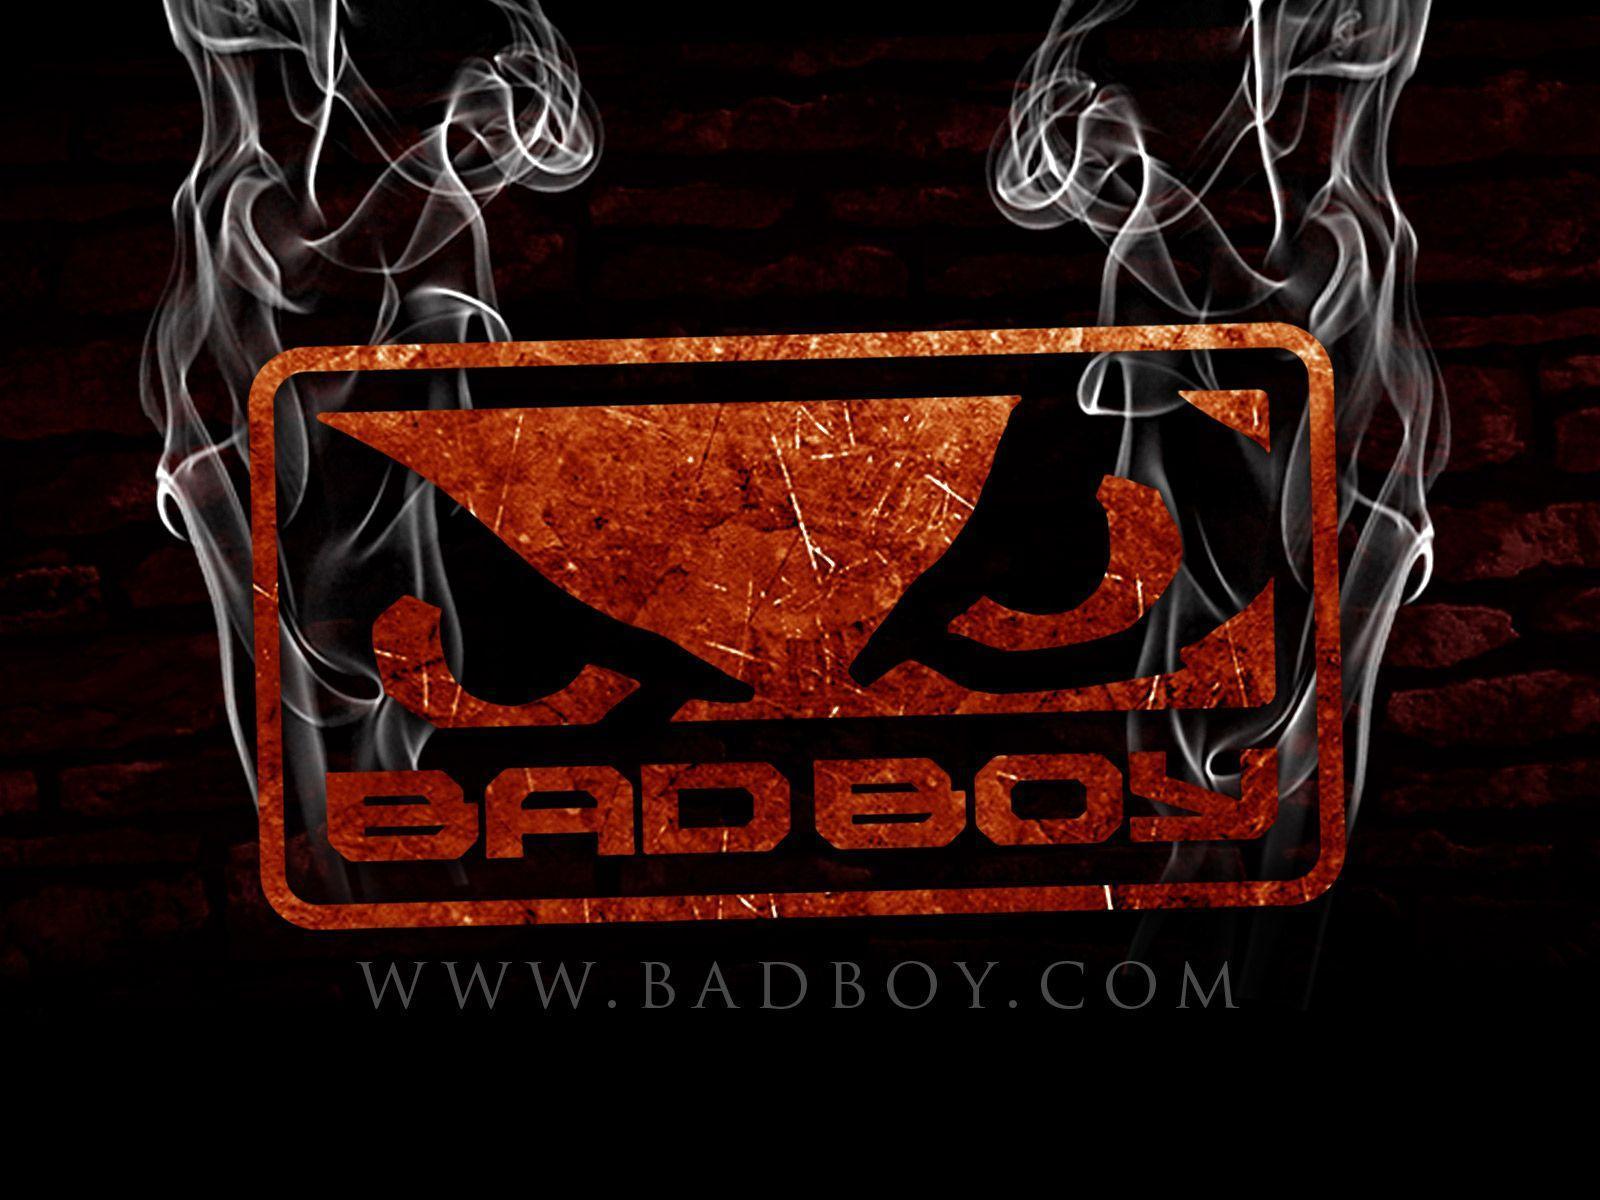 Bad Boy Wallpaper - WallpaperSafari & Bad Boy Wallpapers - Wallpaper Cave